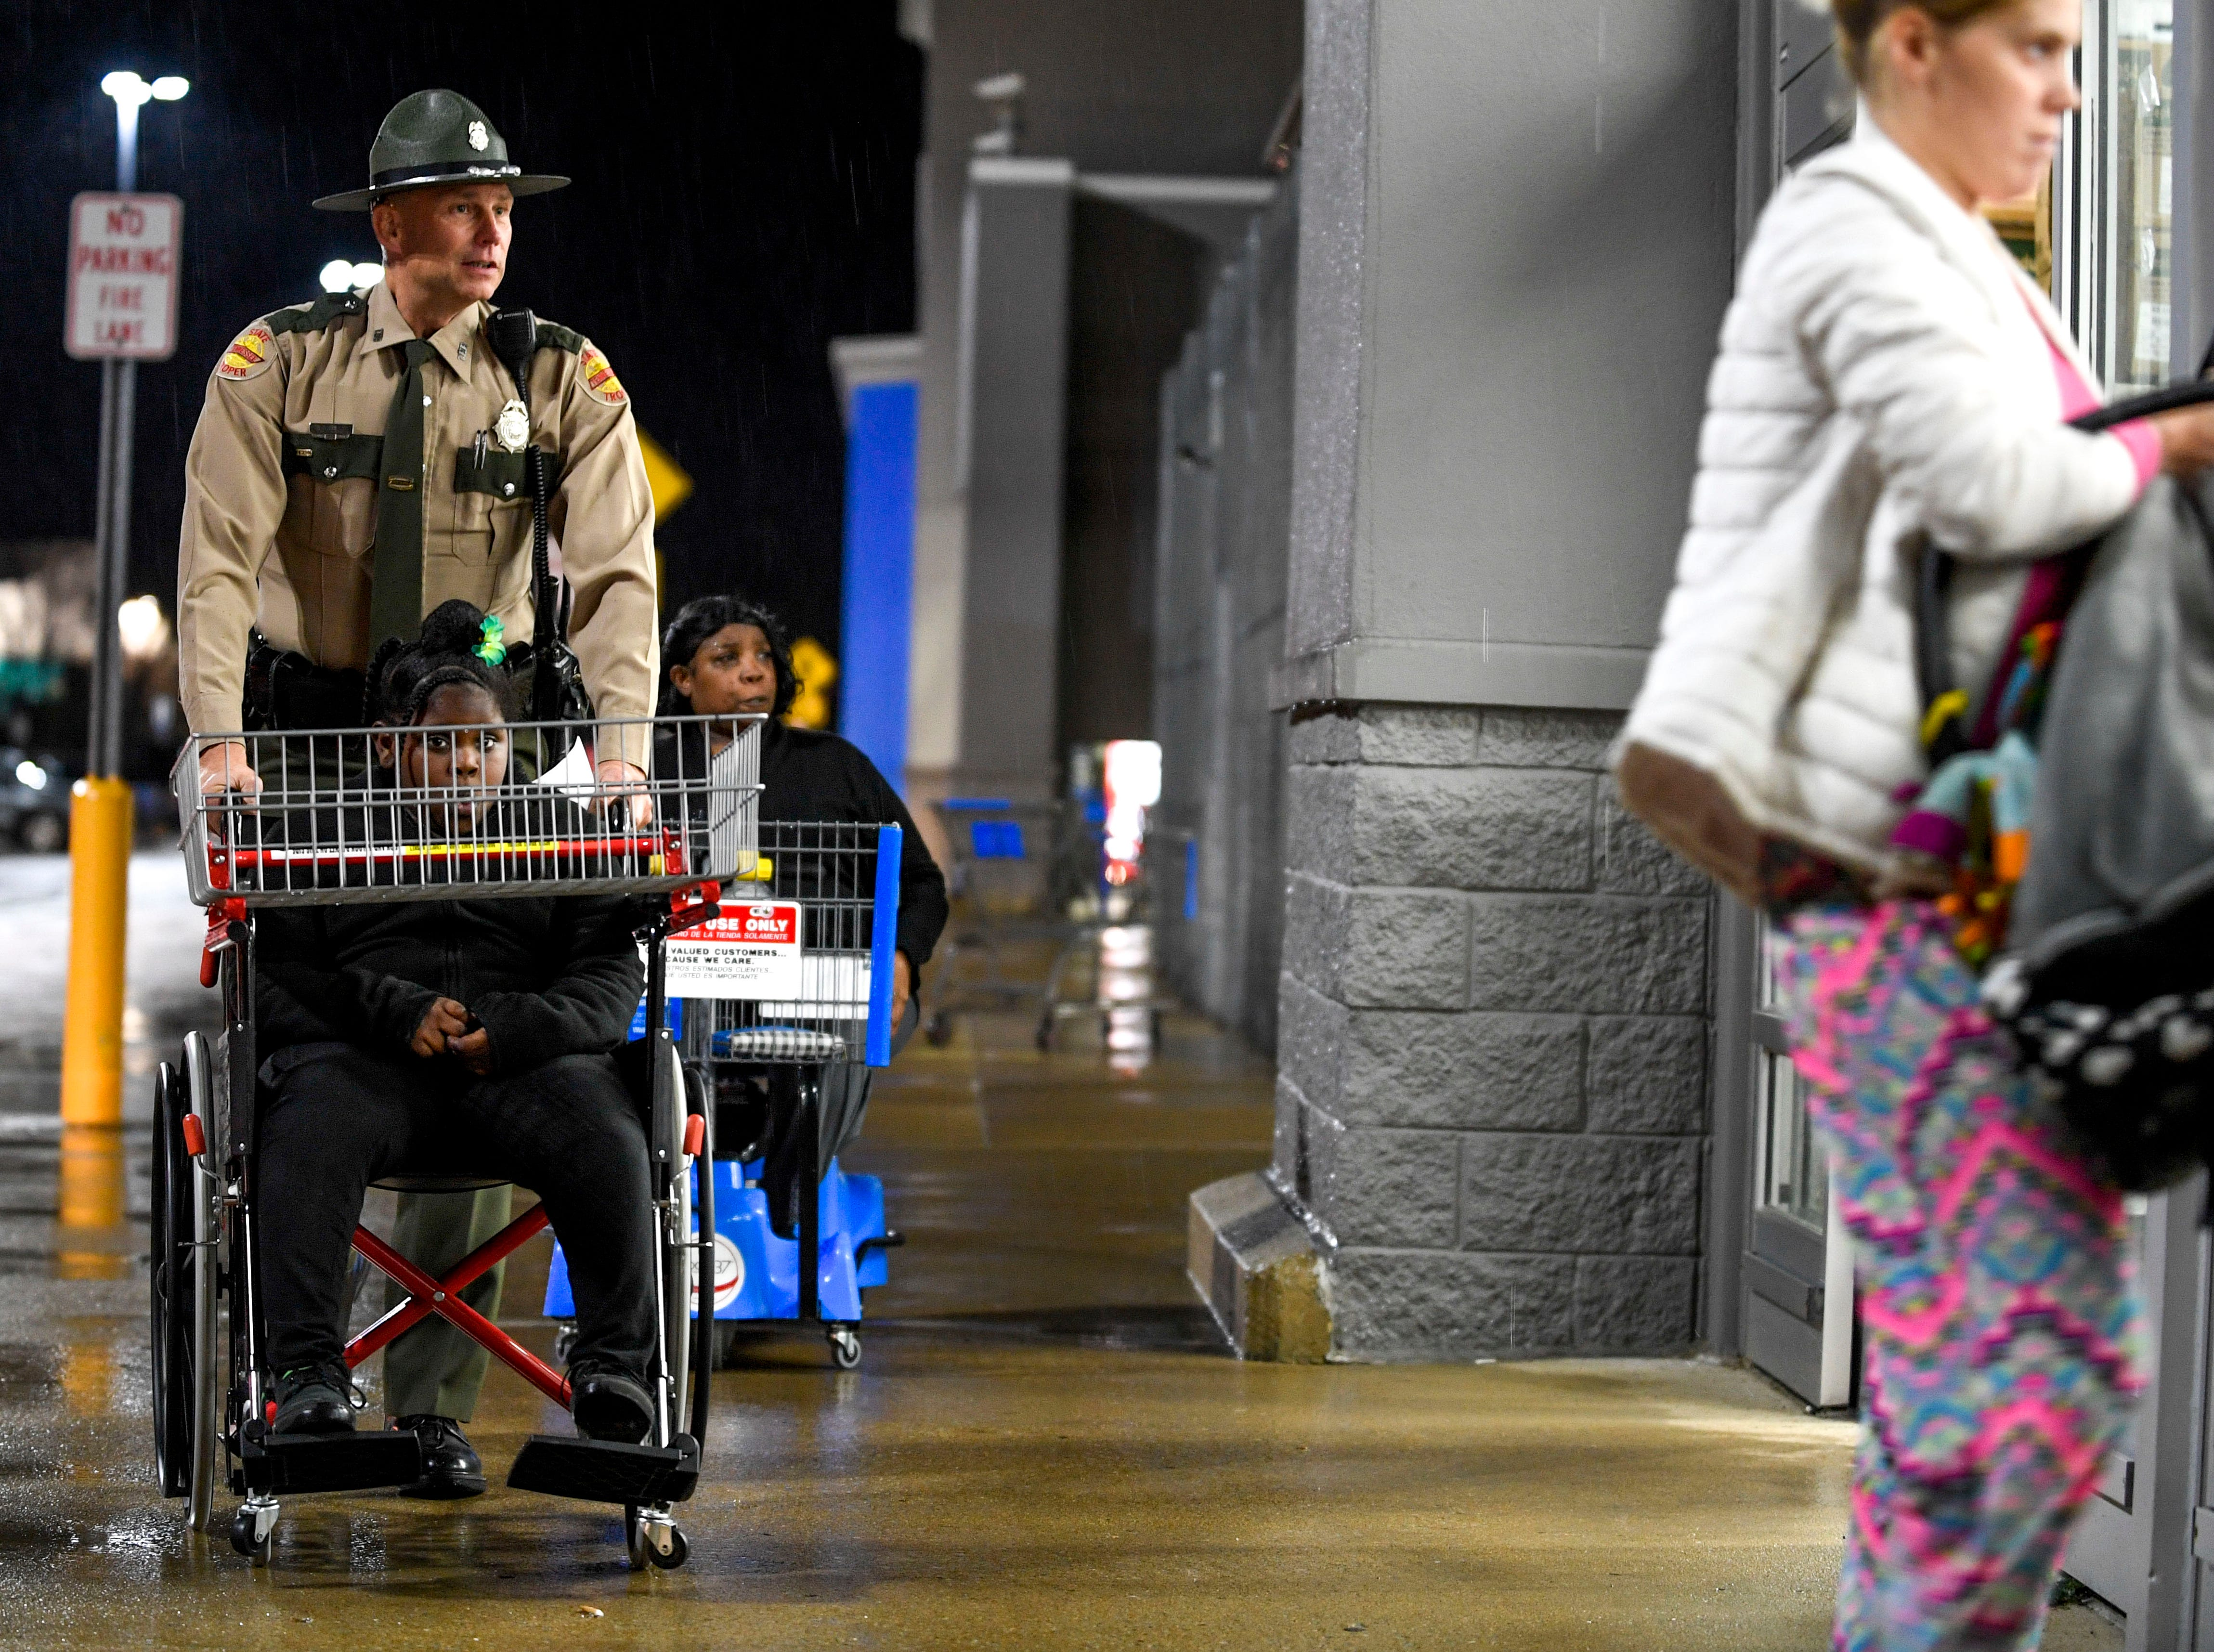 A state trooper walks into Walmart with his partner during shopping time for the annual Shop with a Cop program at Walmart in Milan, Tenn., on Thursday, Dec. 13, 2018.